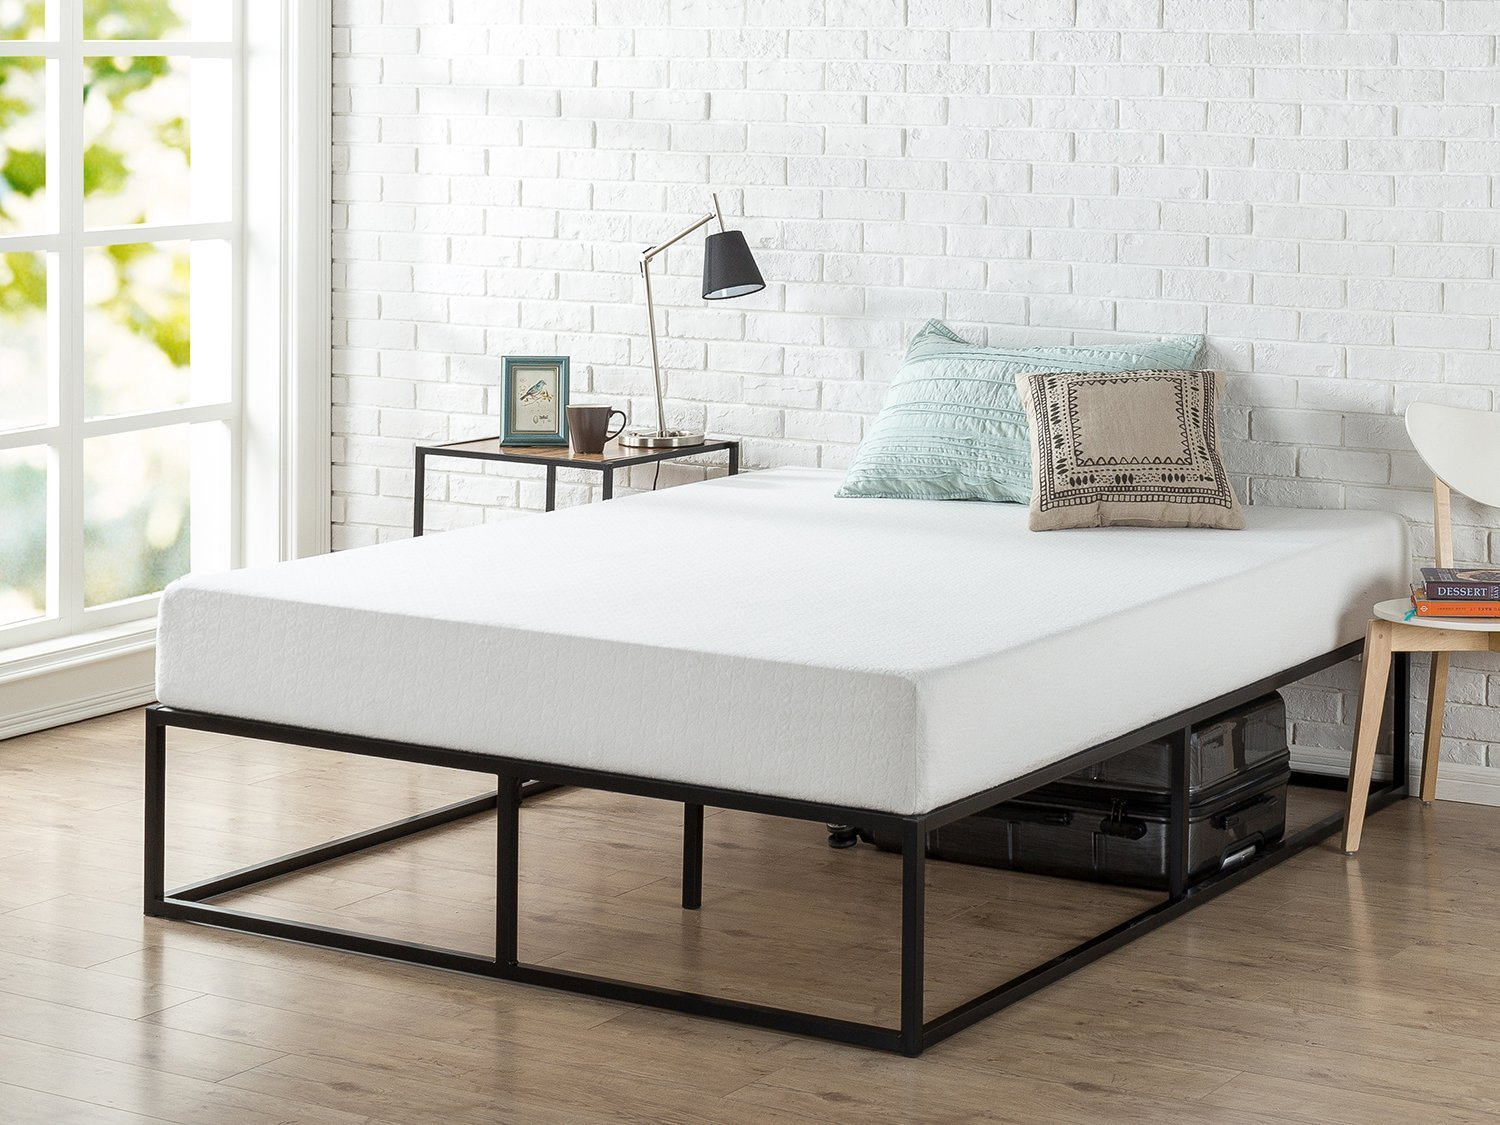 Modern Studio 14 Inch Platforma Bed Frame Mattress